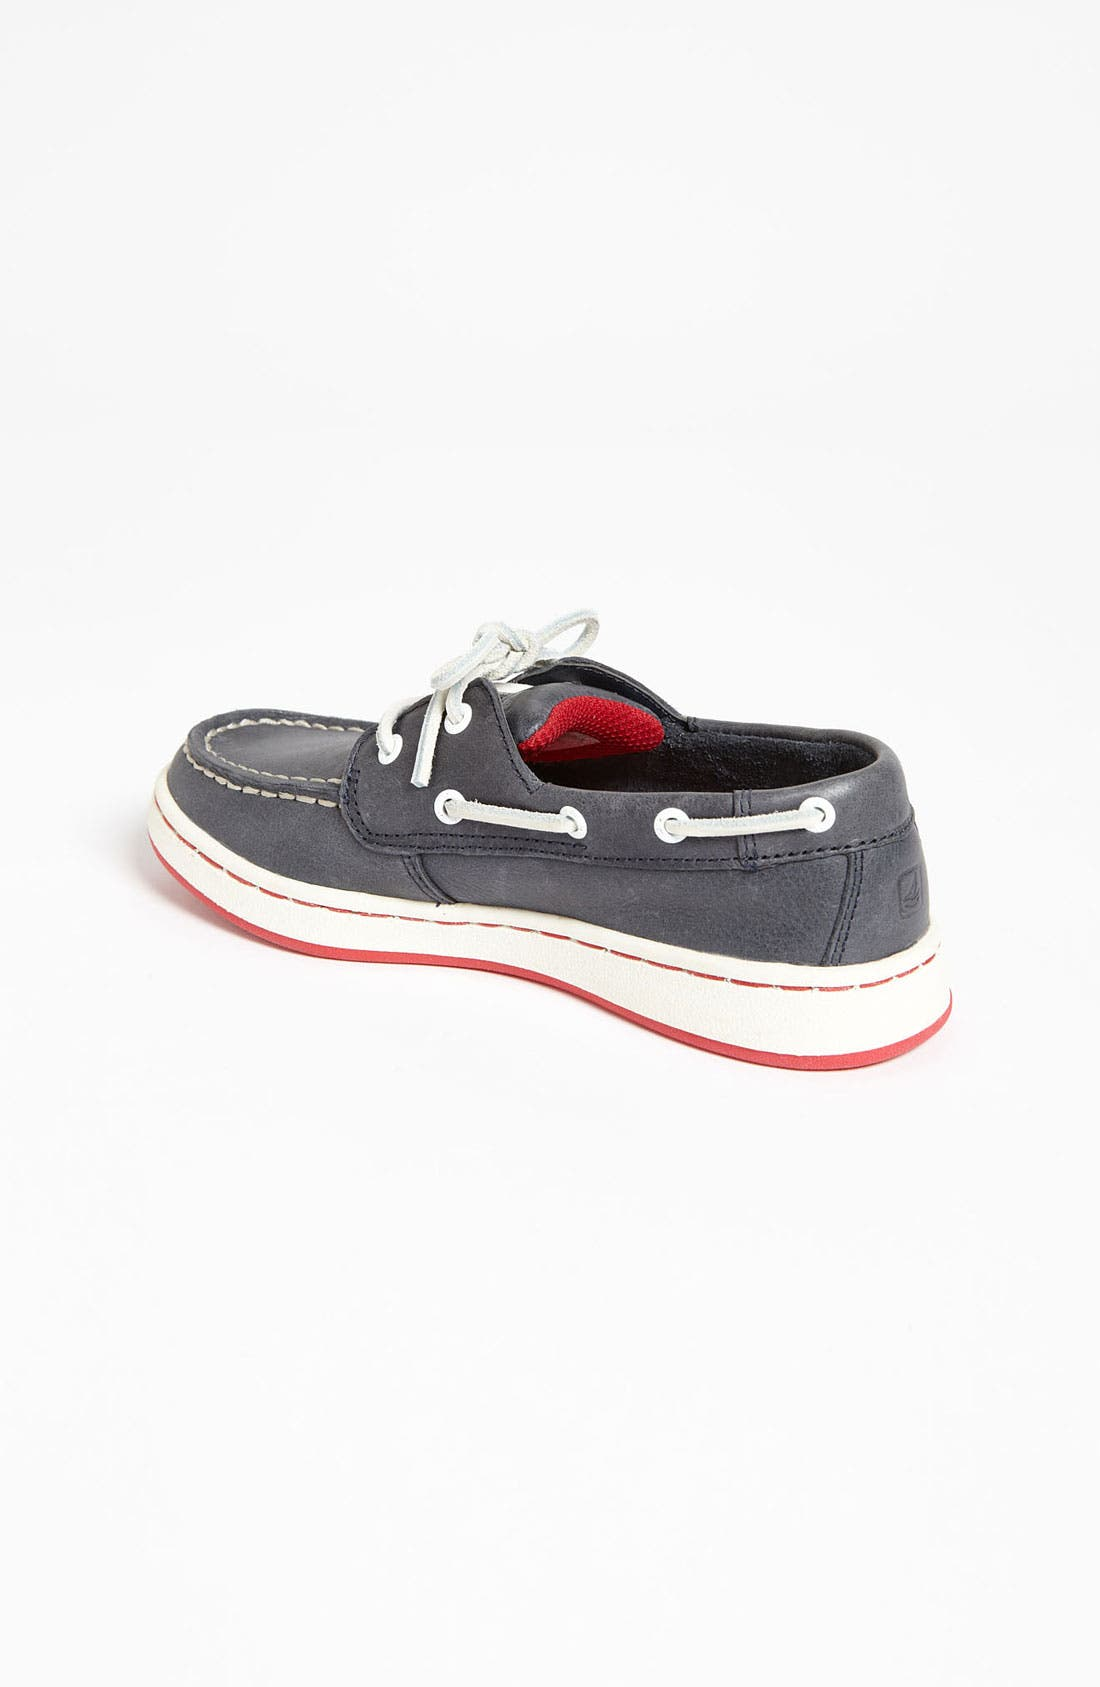 Alternate Image 2  - Sperry Top-Sider® 'Cupsole' Boat Shoe (Toddler, Little Kid & Big Kid)